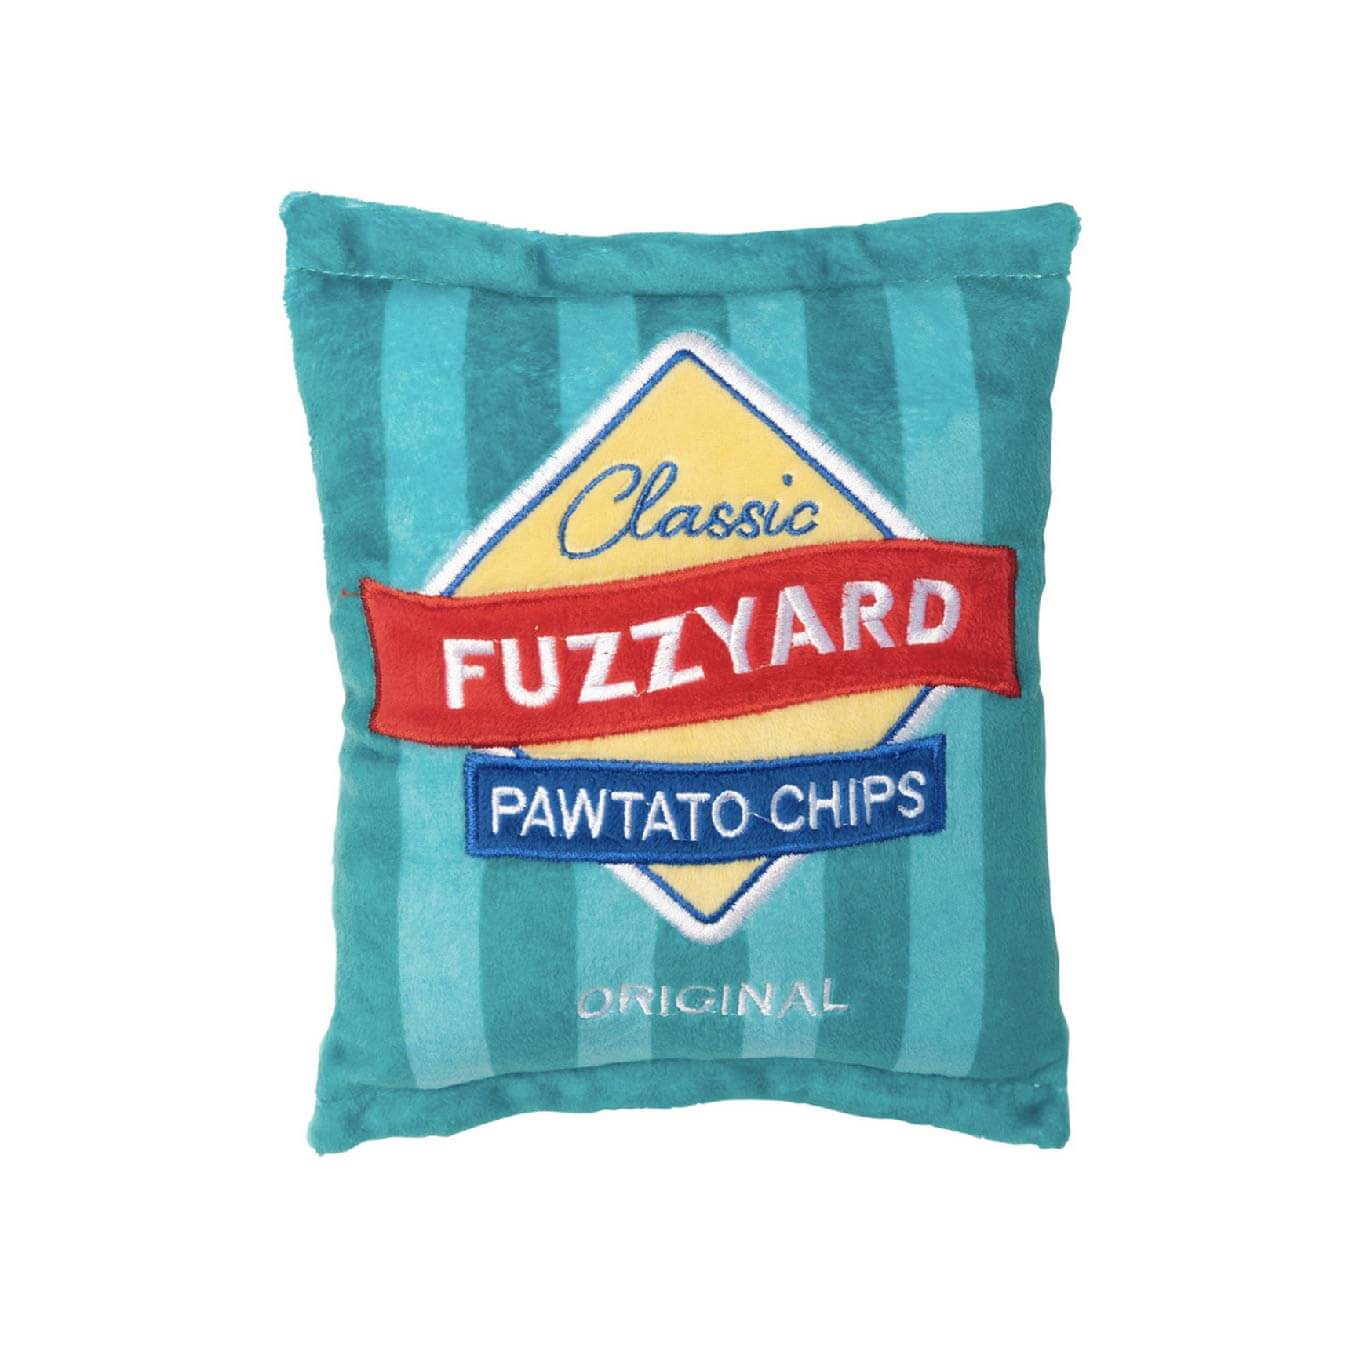 FuzzYard Pawtato Chip Dog Toy - Dogs, FuzzYard, New, Toys - Shop Vanillapup